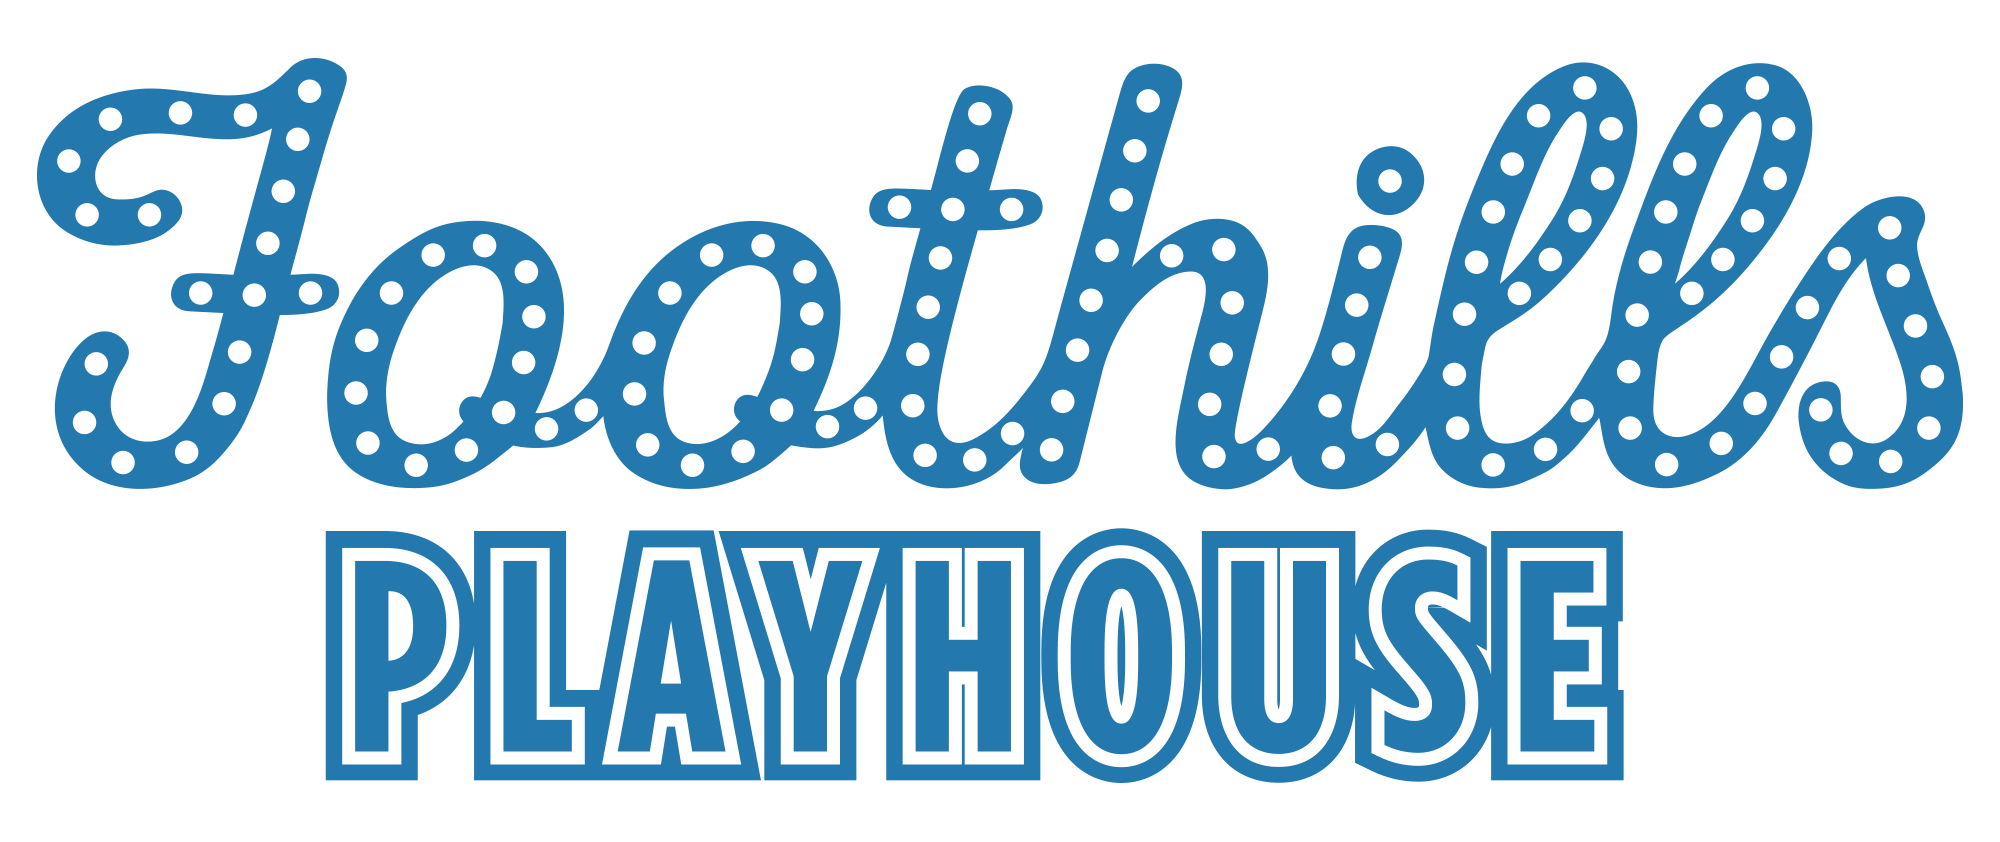 Foothills Playhouse Logo Text One Color A.png